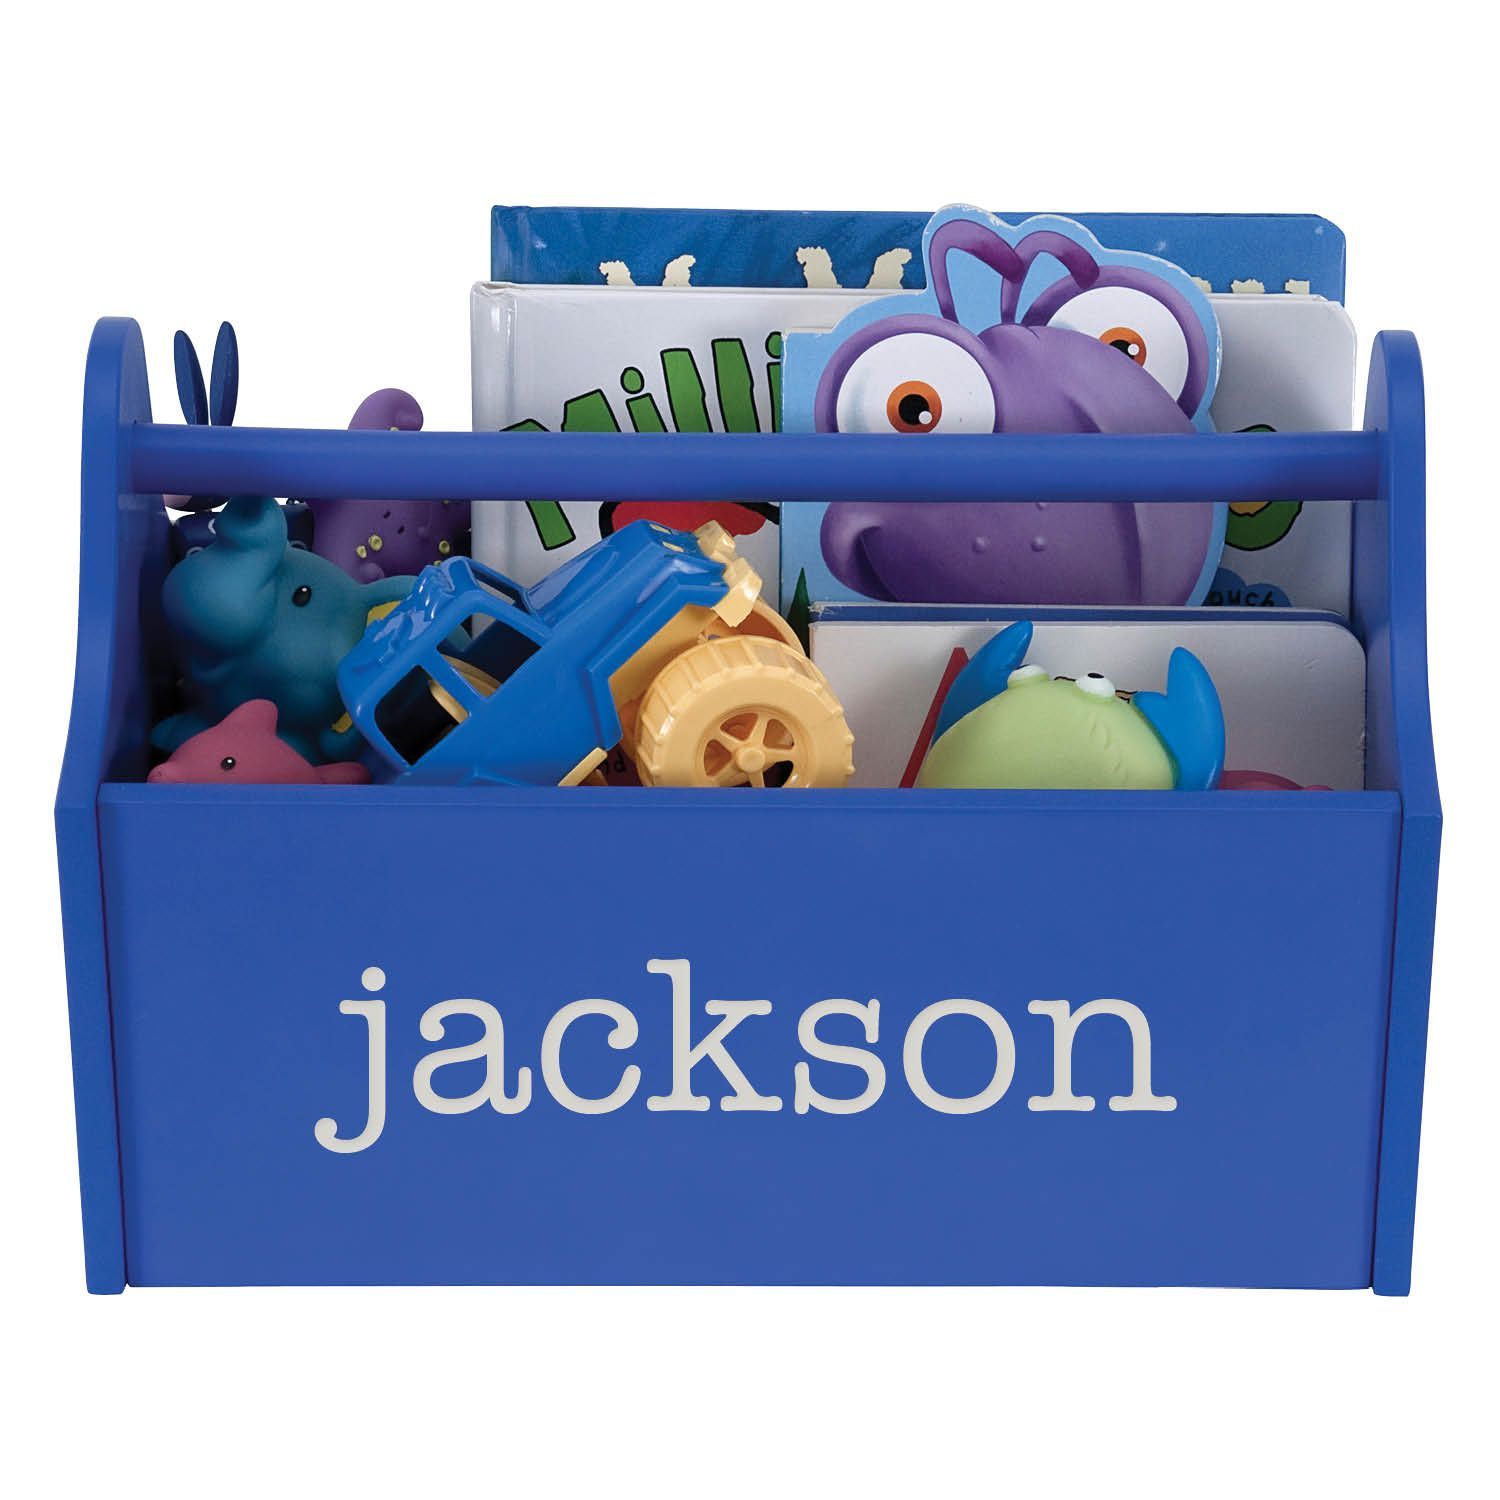 Personalized Bedroom Decor Personalized Red Toy Caddy Room Decor Kids Personalized